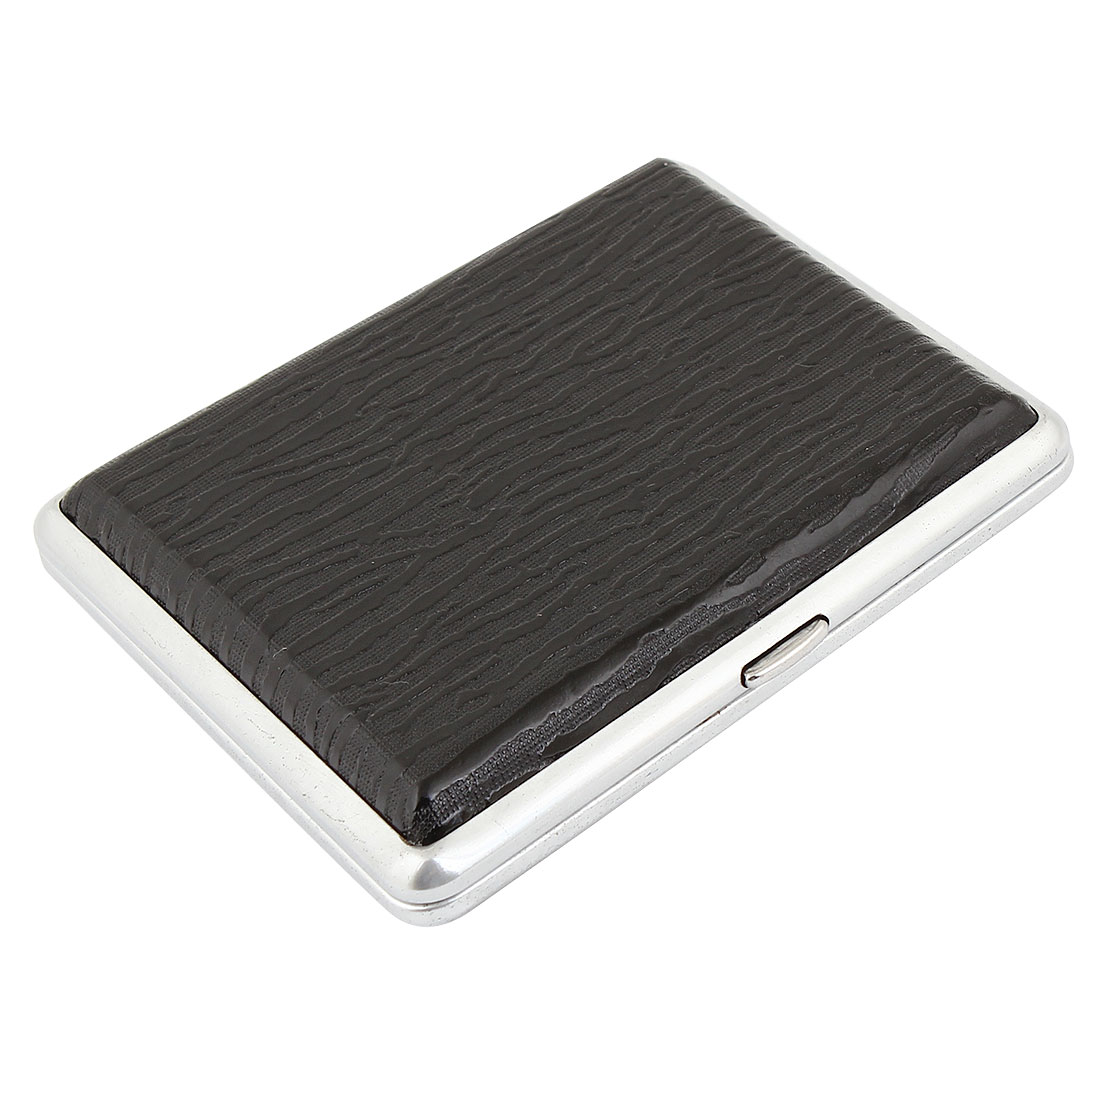 Textured Faux Leather Wrapped Cigarette Holder Case Black